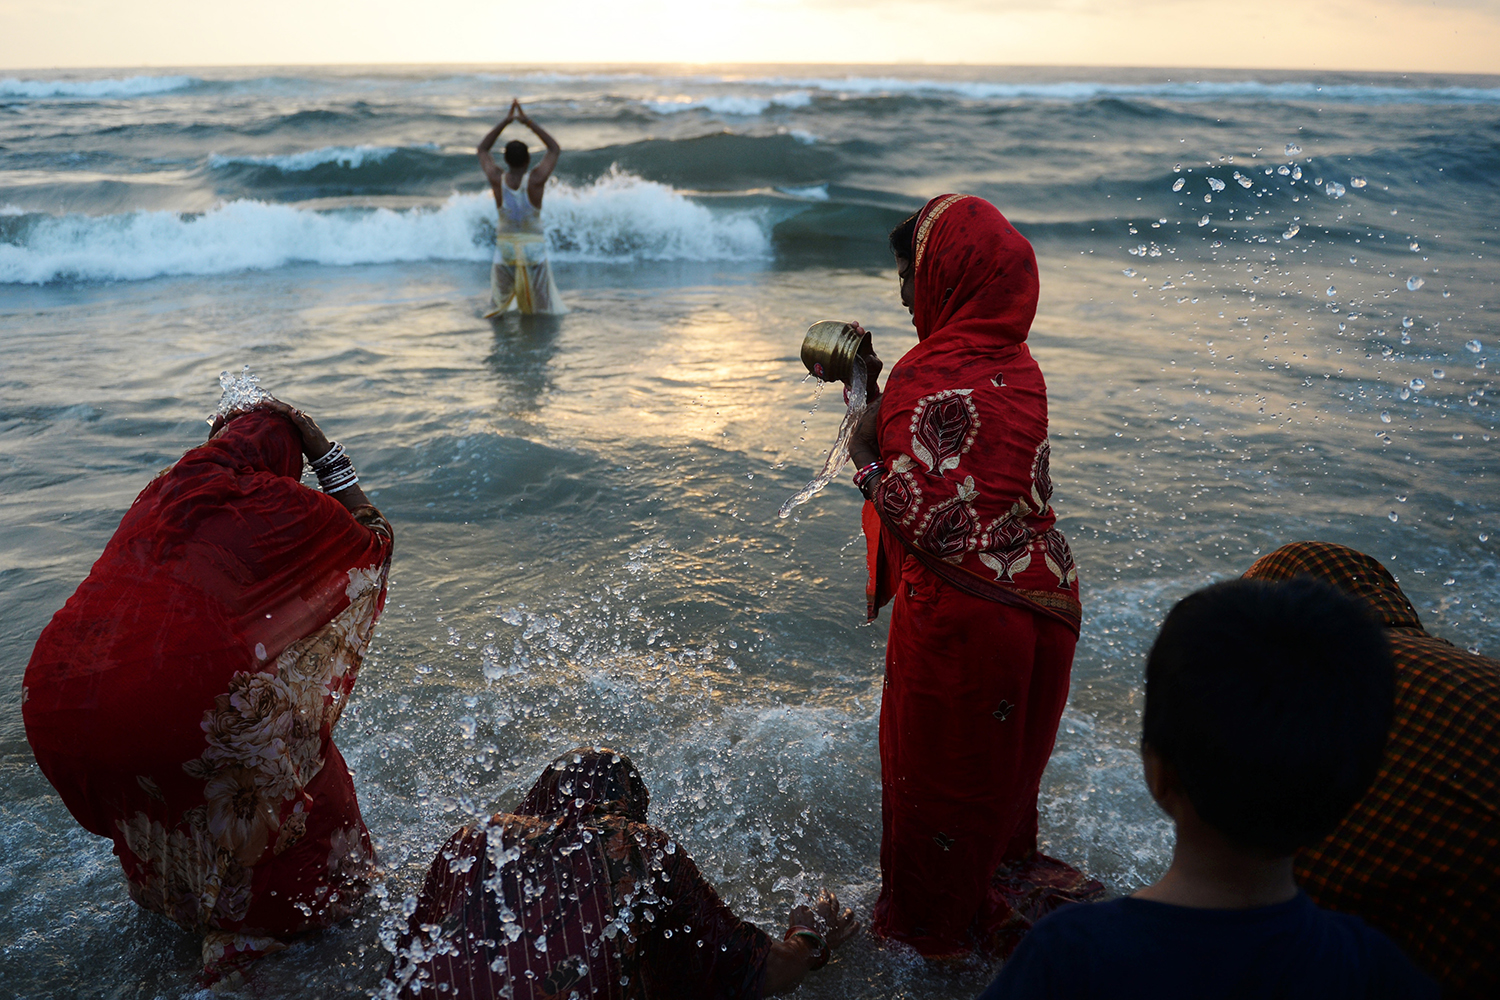 TOPSHOT - Indian Hindu devotees perform rituals and bathe in the Bay of Bengal during the Chhath Puja in Chennai on October 27, 2017. The Chhath Festival, also known as Surya Pooja, or worship of the sun, is observed in parts of India and Nepal and sees devotees pay homage to the sun and water gods. Devotees undergo a fast and offer water and milk to the sun god at dawn and dusk on the banks of rivers or small ponds and pray for the longivety and health of their spouse. / AFP PHOTO / ARUN SANKAR        (Photo credit should read ARUN SANKAR/AFP/Getty Images)